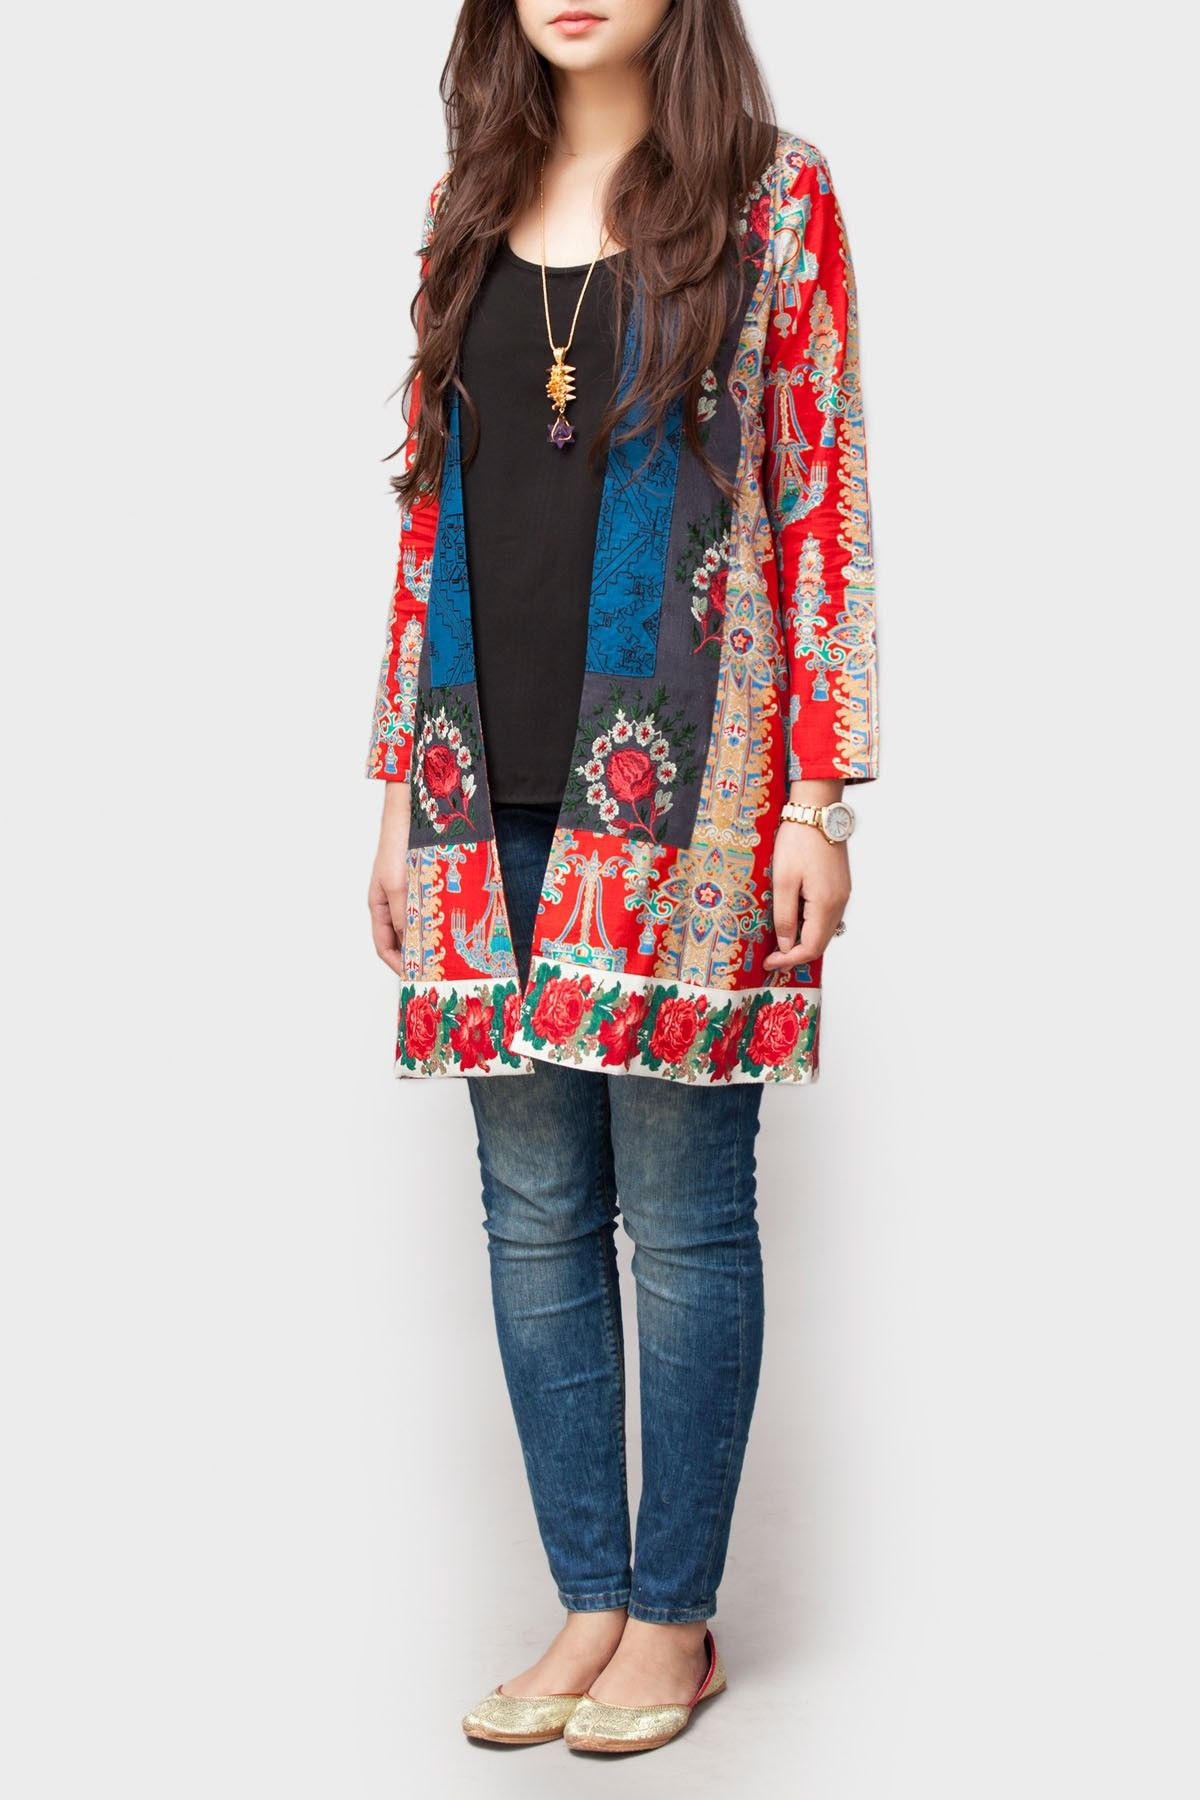 Ruzzki long jacket generation womenus outfits and accessories in